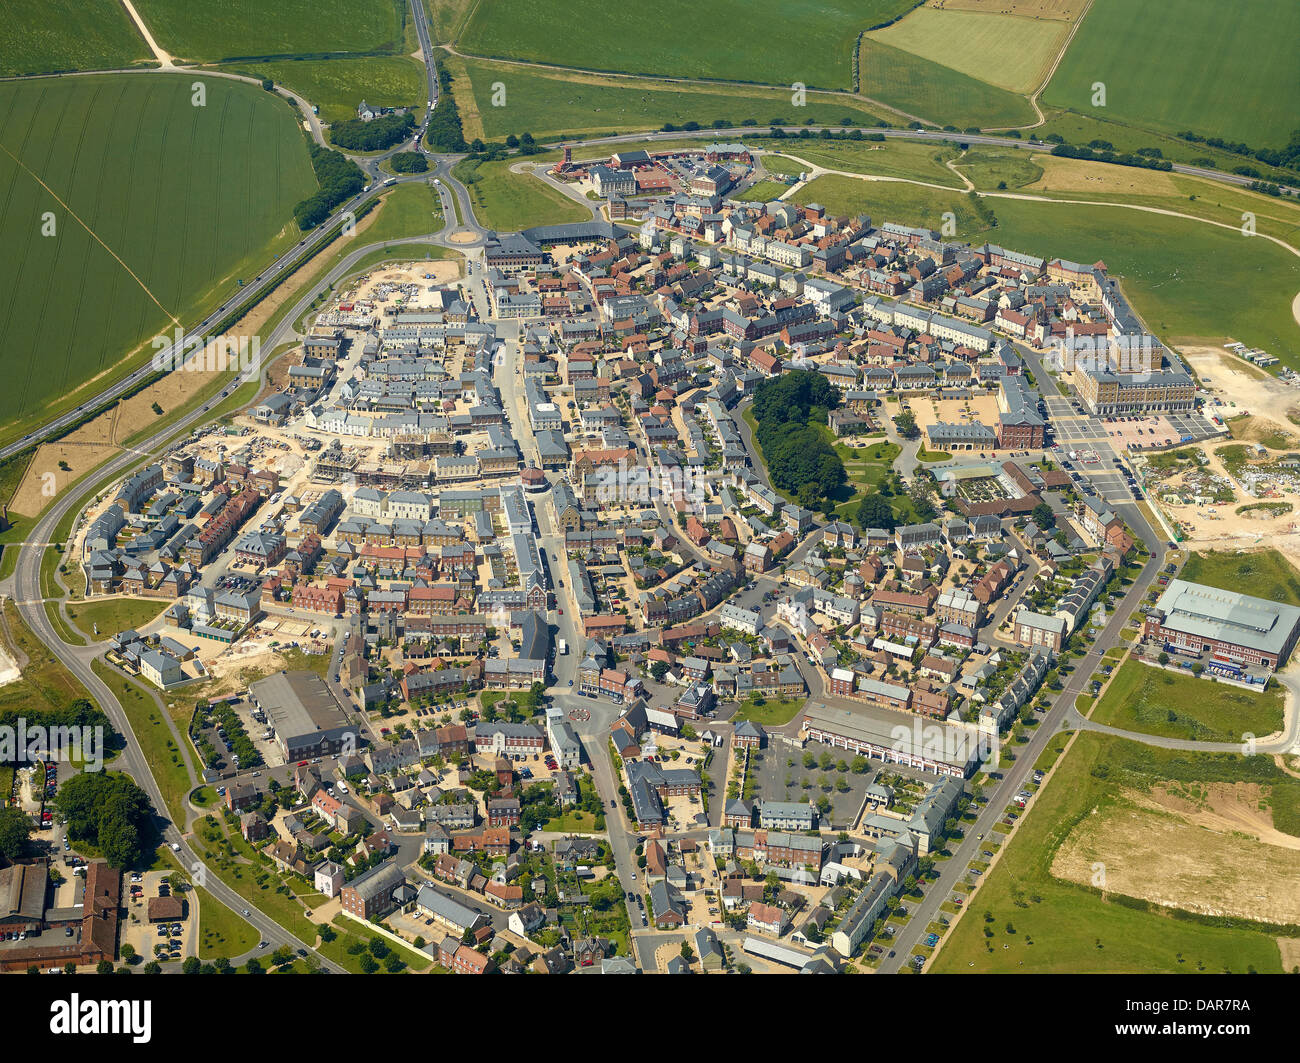 map of chester county with Stock Photo Poundbury Dorchester Dorset South West England Uk 58288702 on Vouchers moreover 220975286577 furthermore Buckley also Index moreover Camden New Jersey.